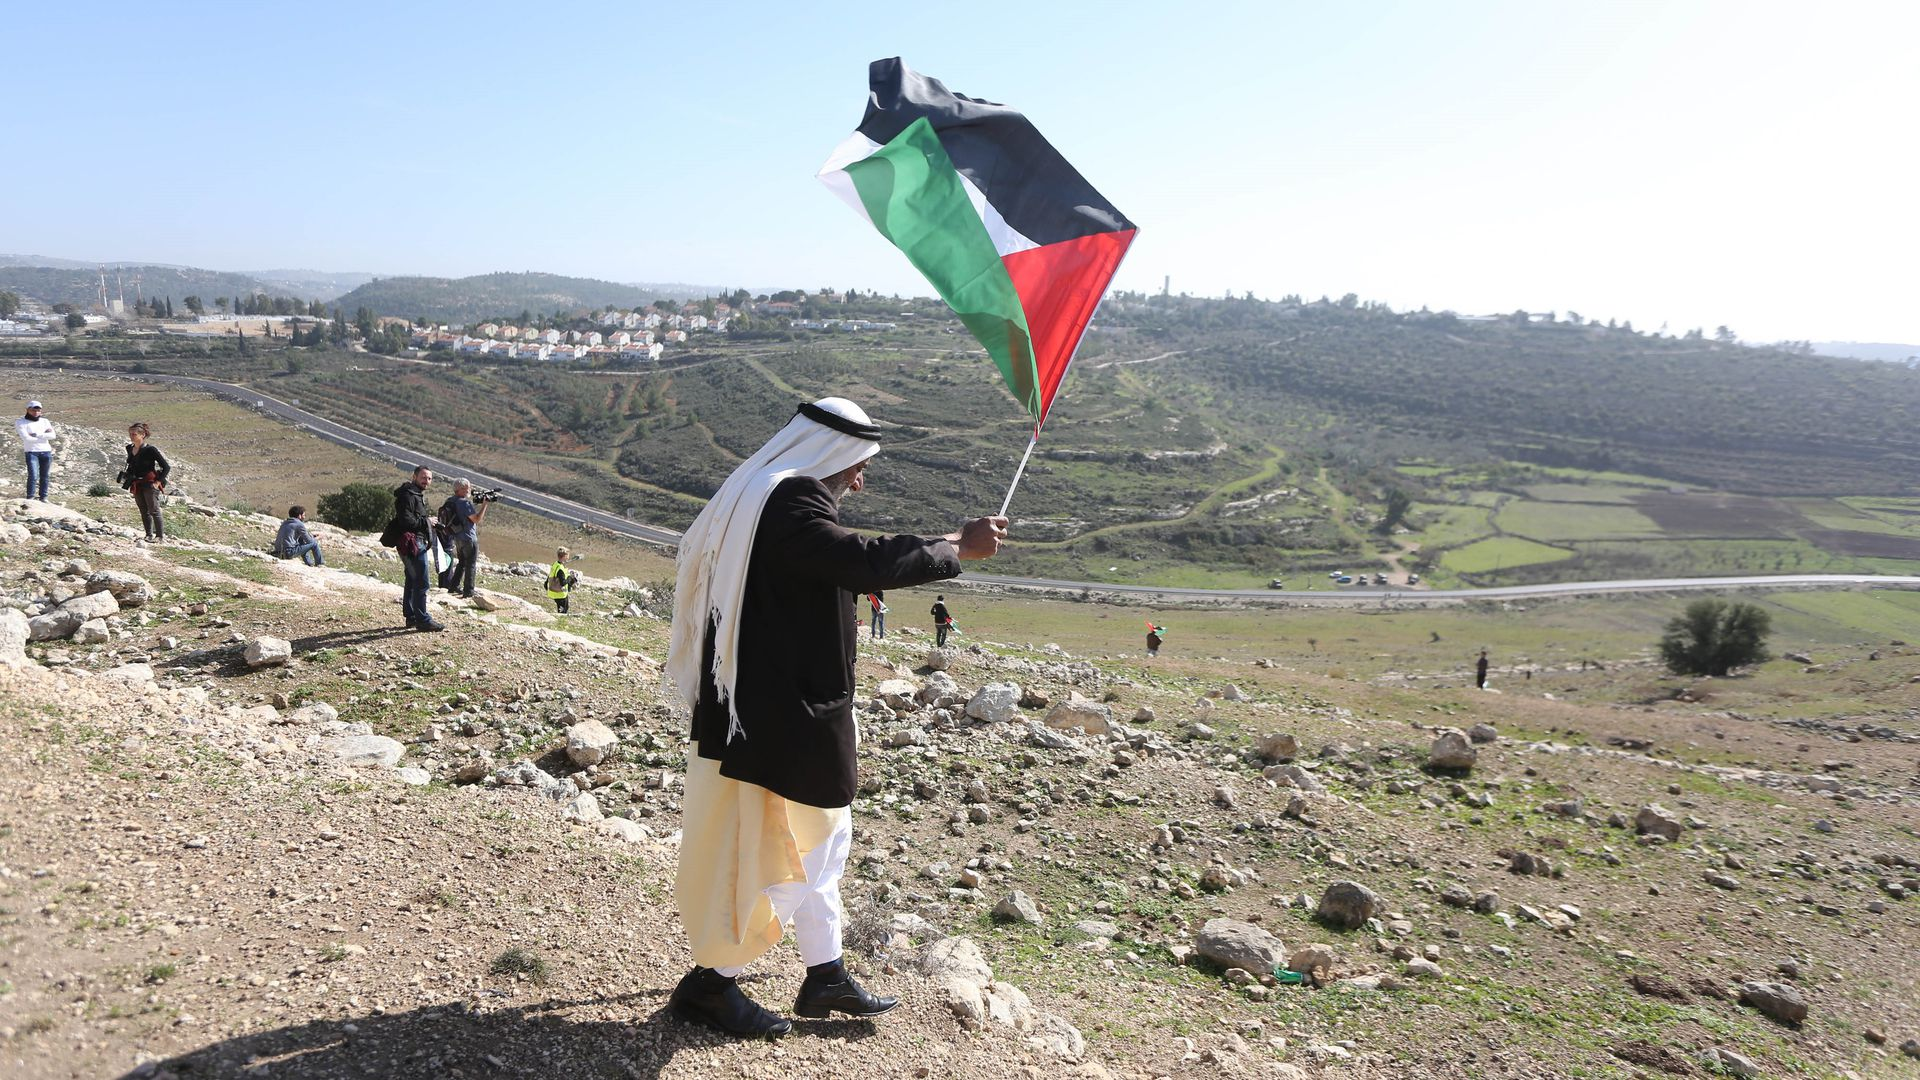 A Palestinian man waves Palestinian flag.